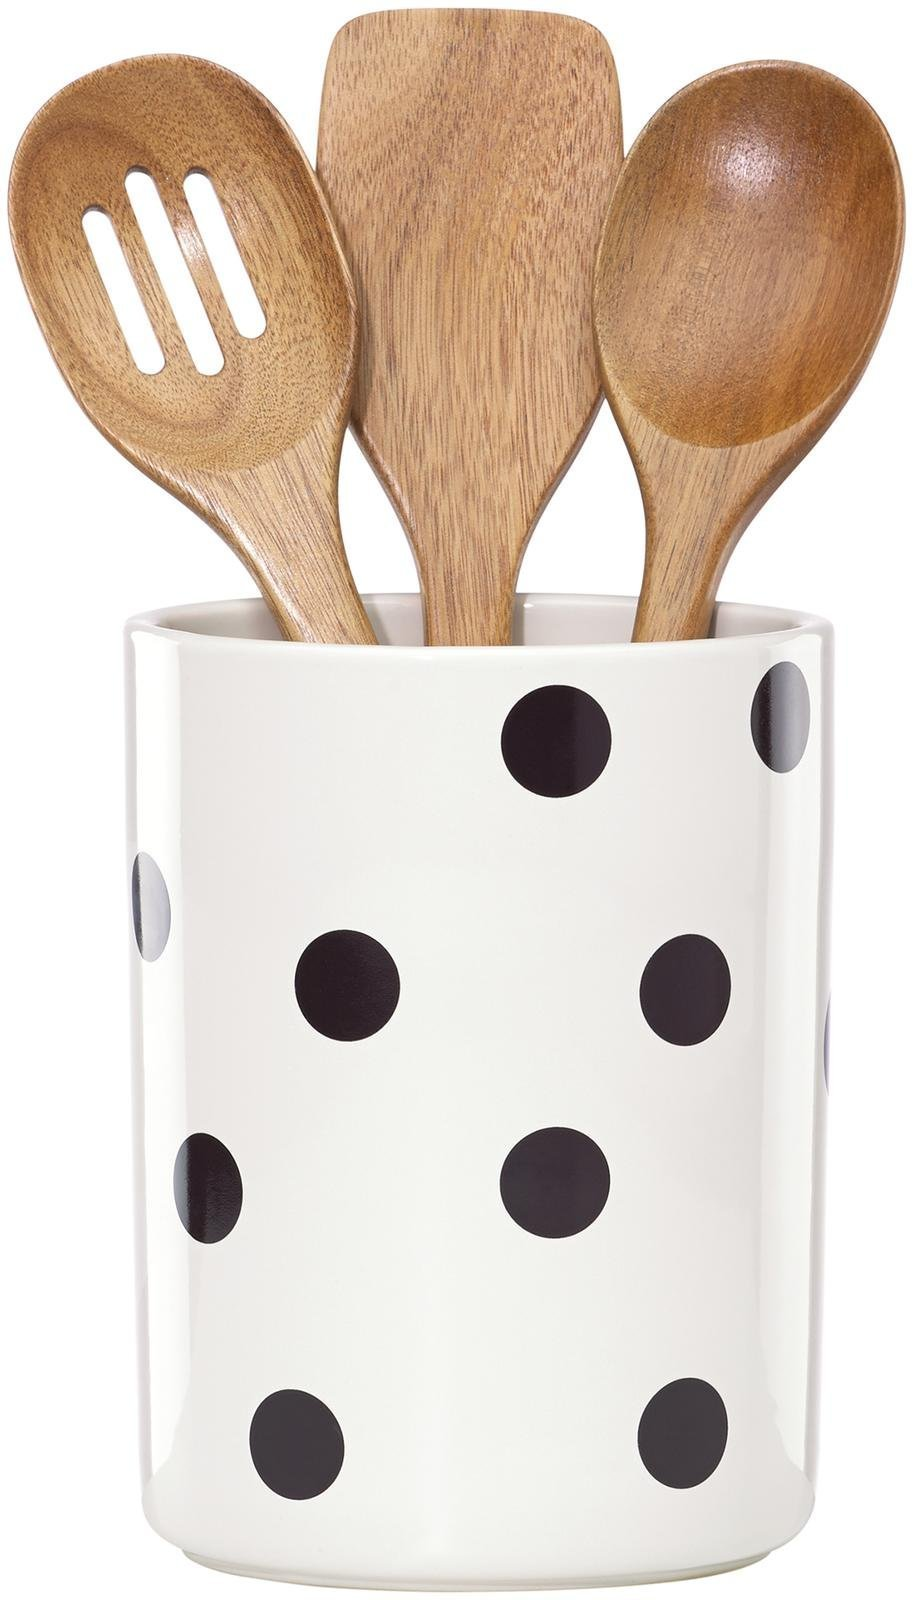 KSNY All in Good Taste Deco Dot Dw Utensil Crock, White